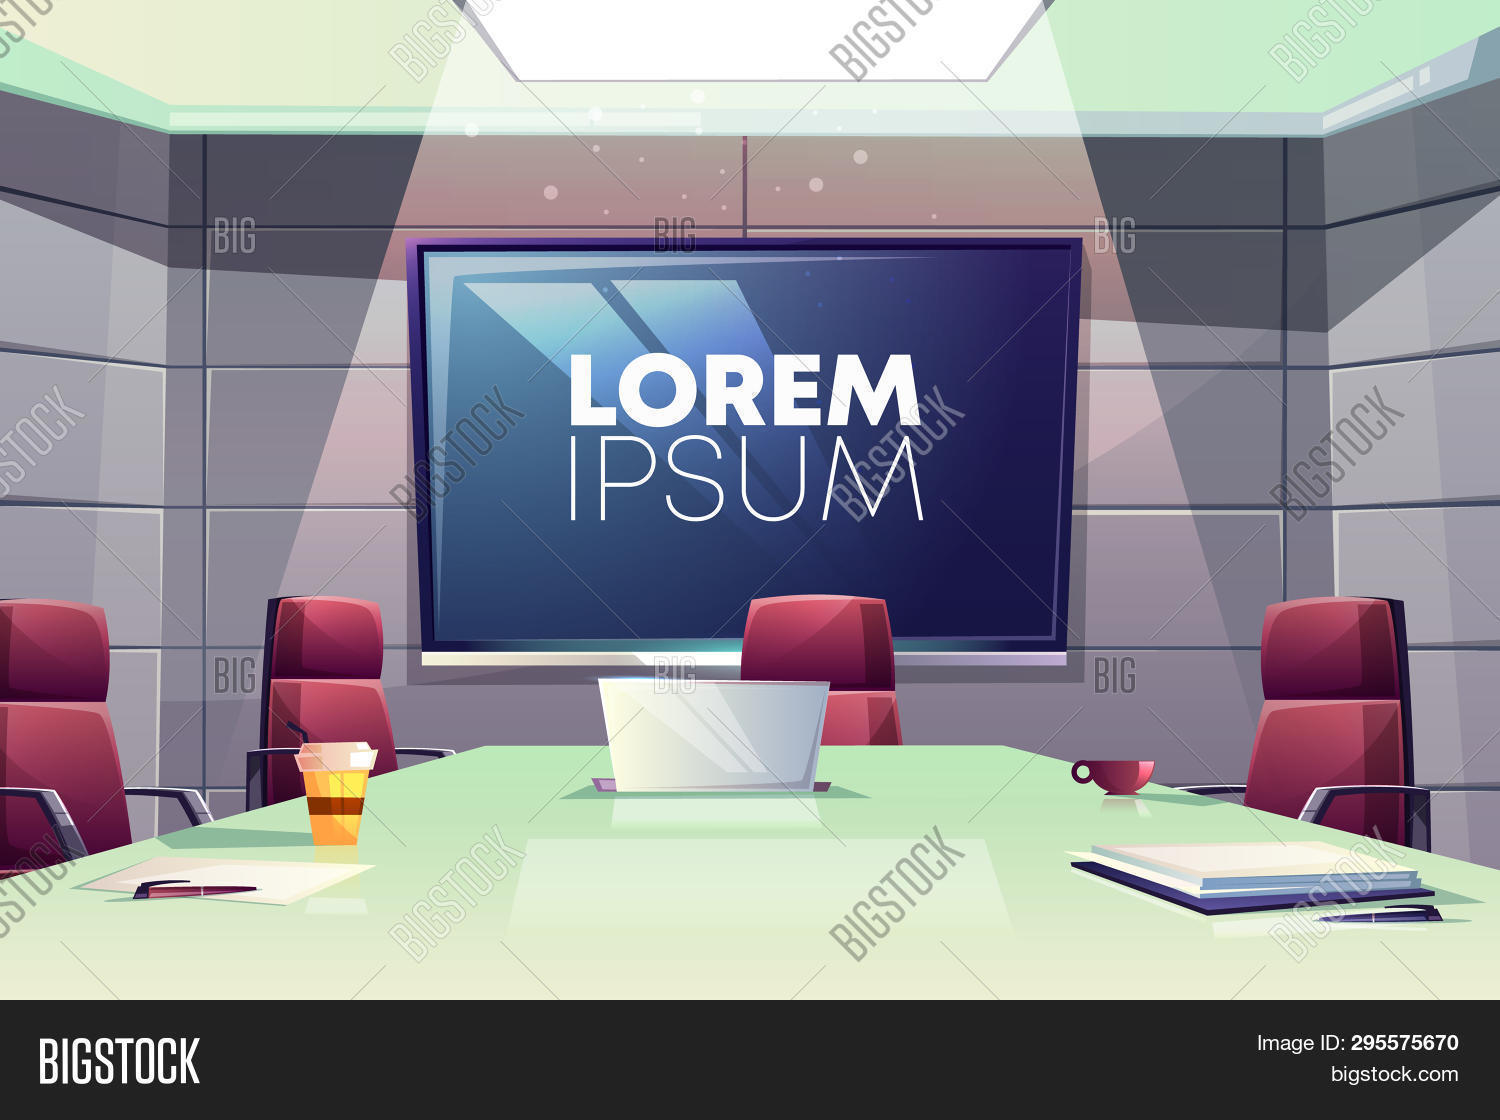 Business Meeting Image Photo Free Trial Bigstock